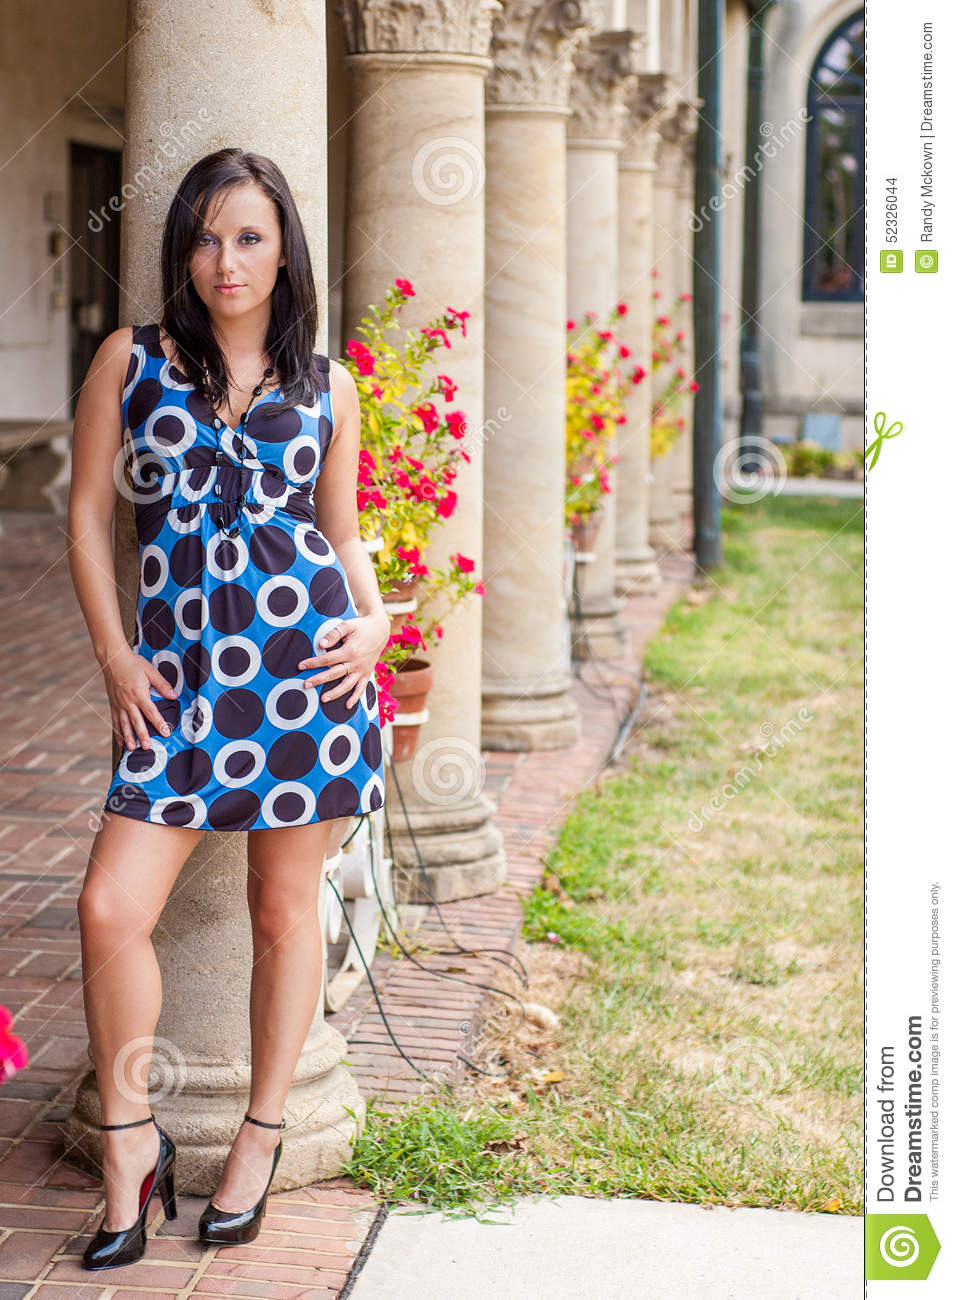 b7b0d57d55c girl   woman   female with dark brown brunette hair. Wearing a pokadot blue  dress that shows soft skin smooth legs. Standing against elegant pillars.